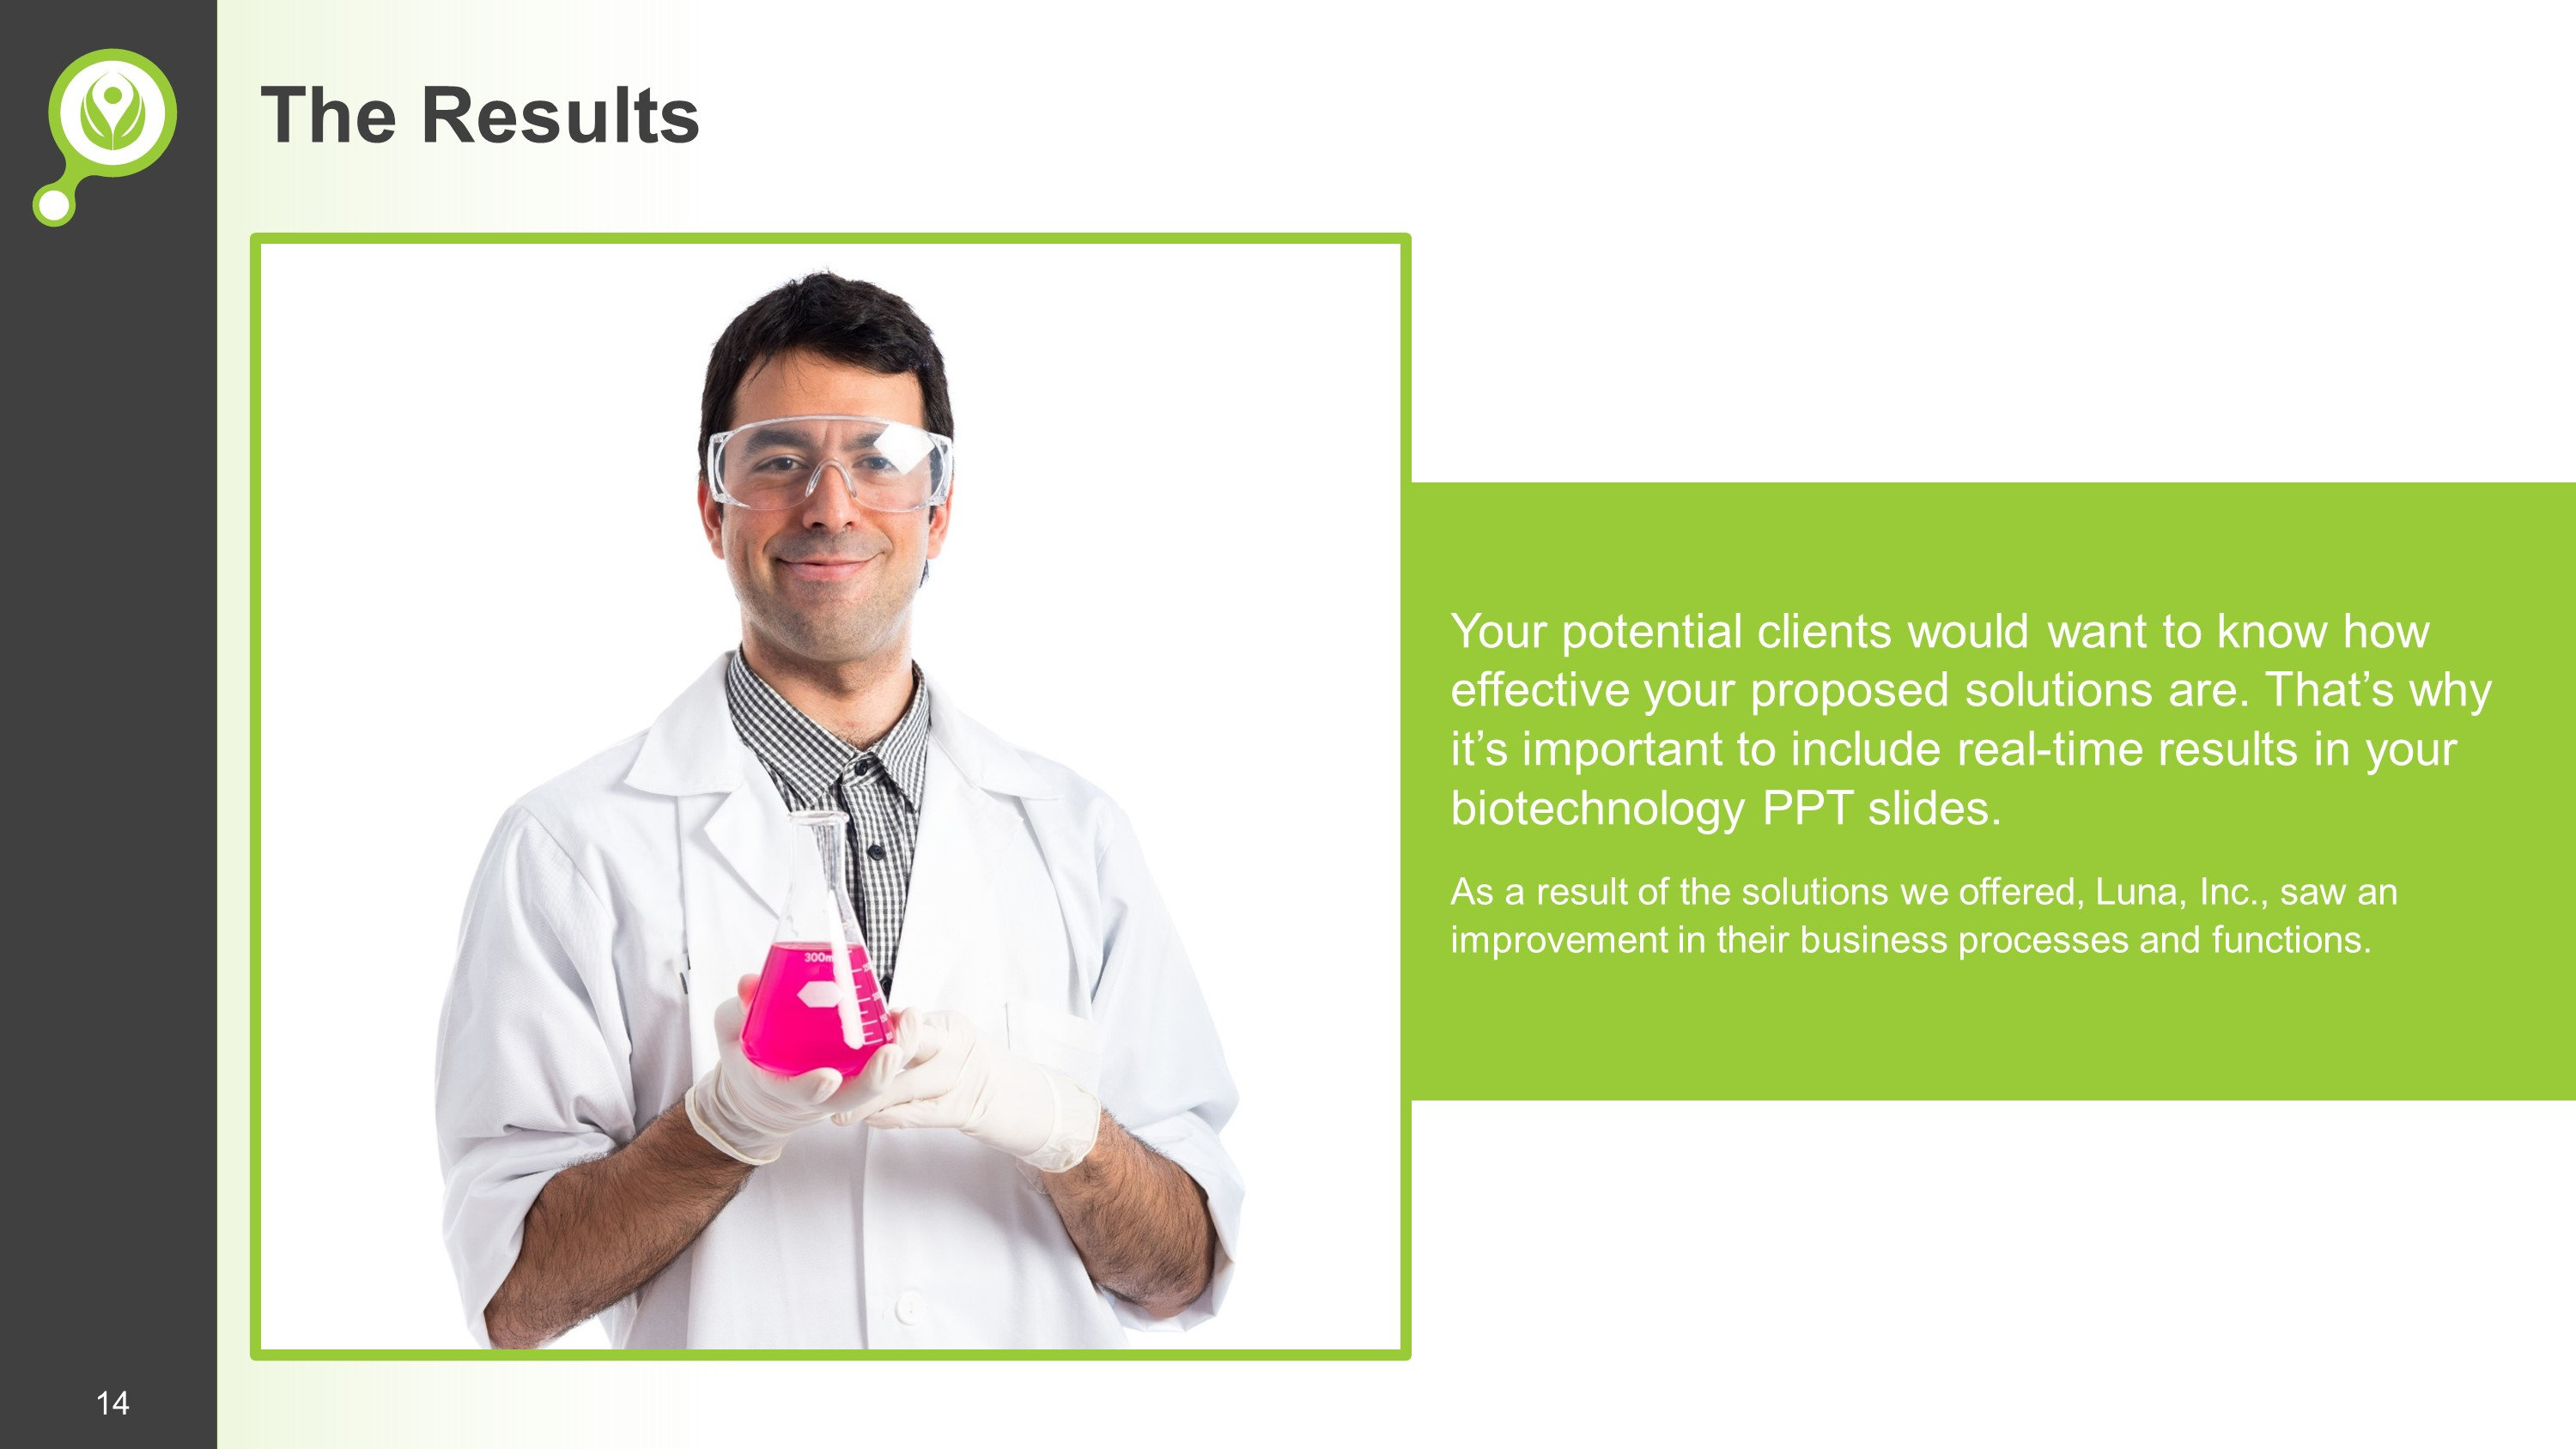 Clean Biotechnology Premium PowerPoint Template